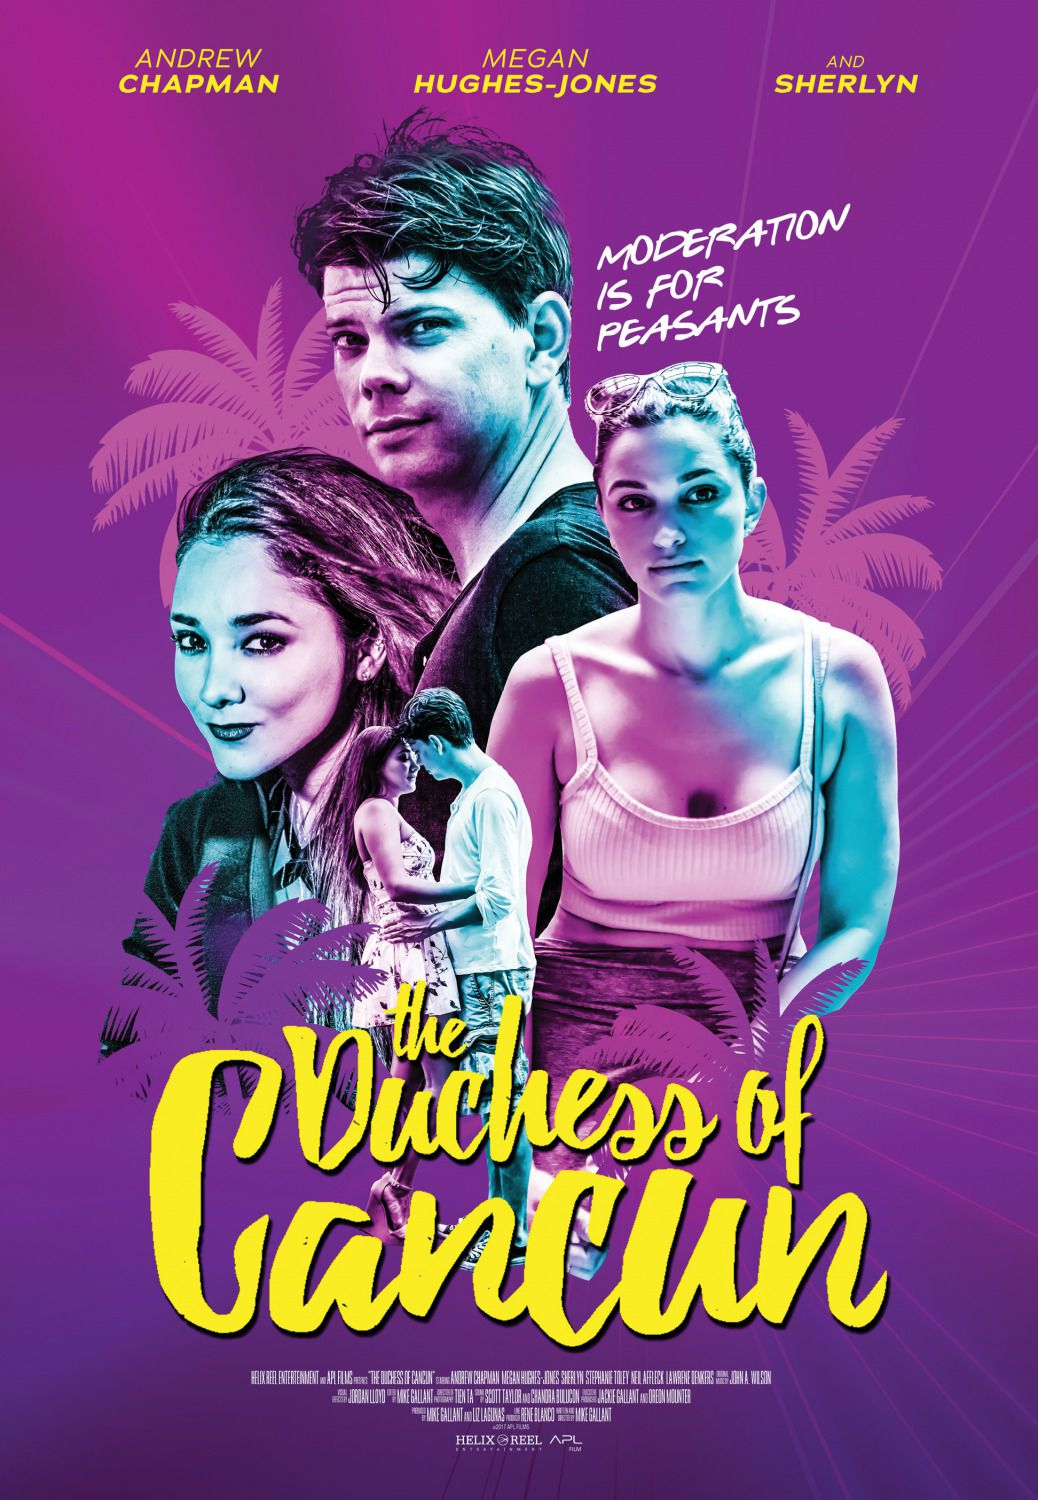 Duchess of Cancun - love film poster